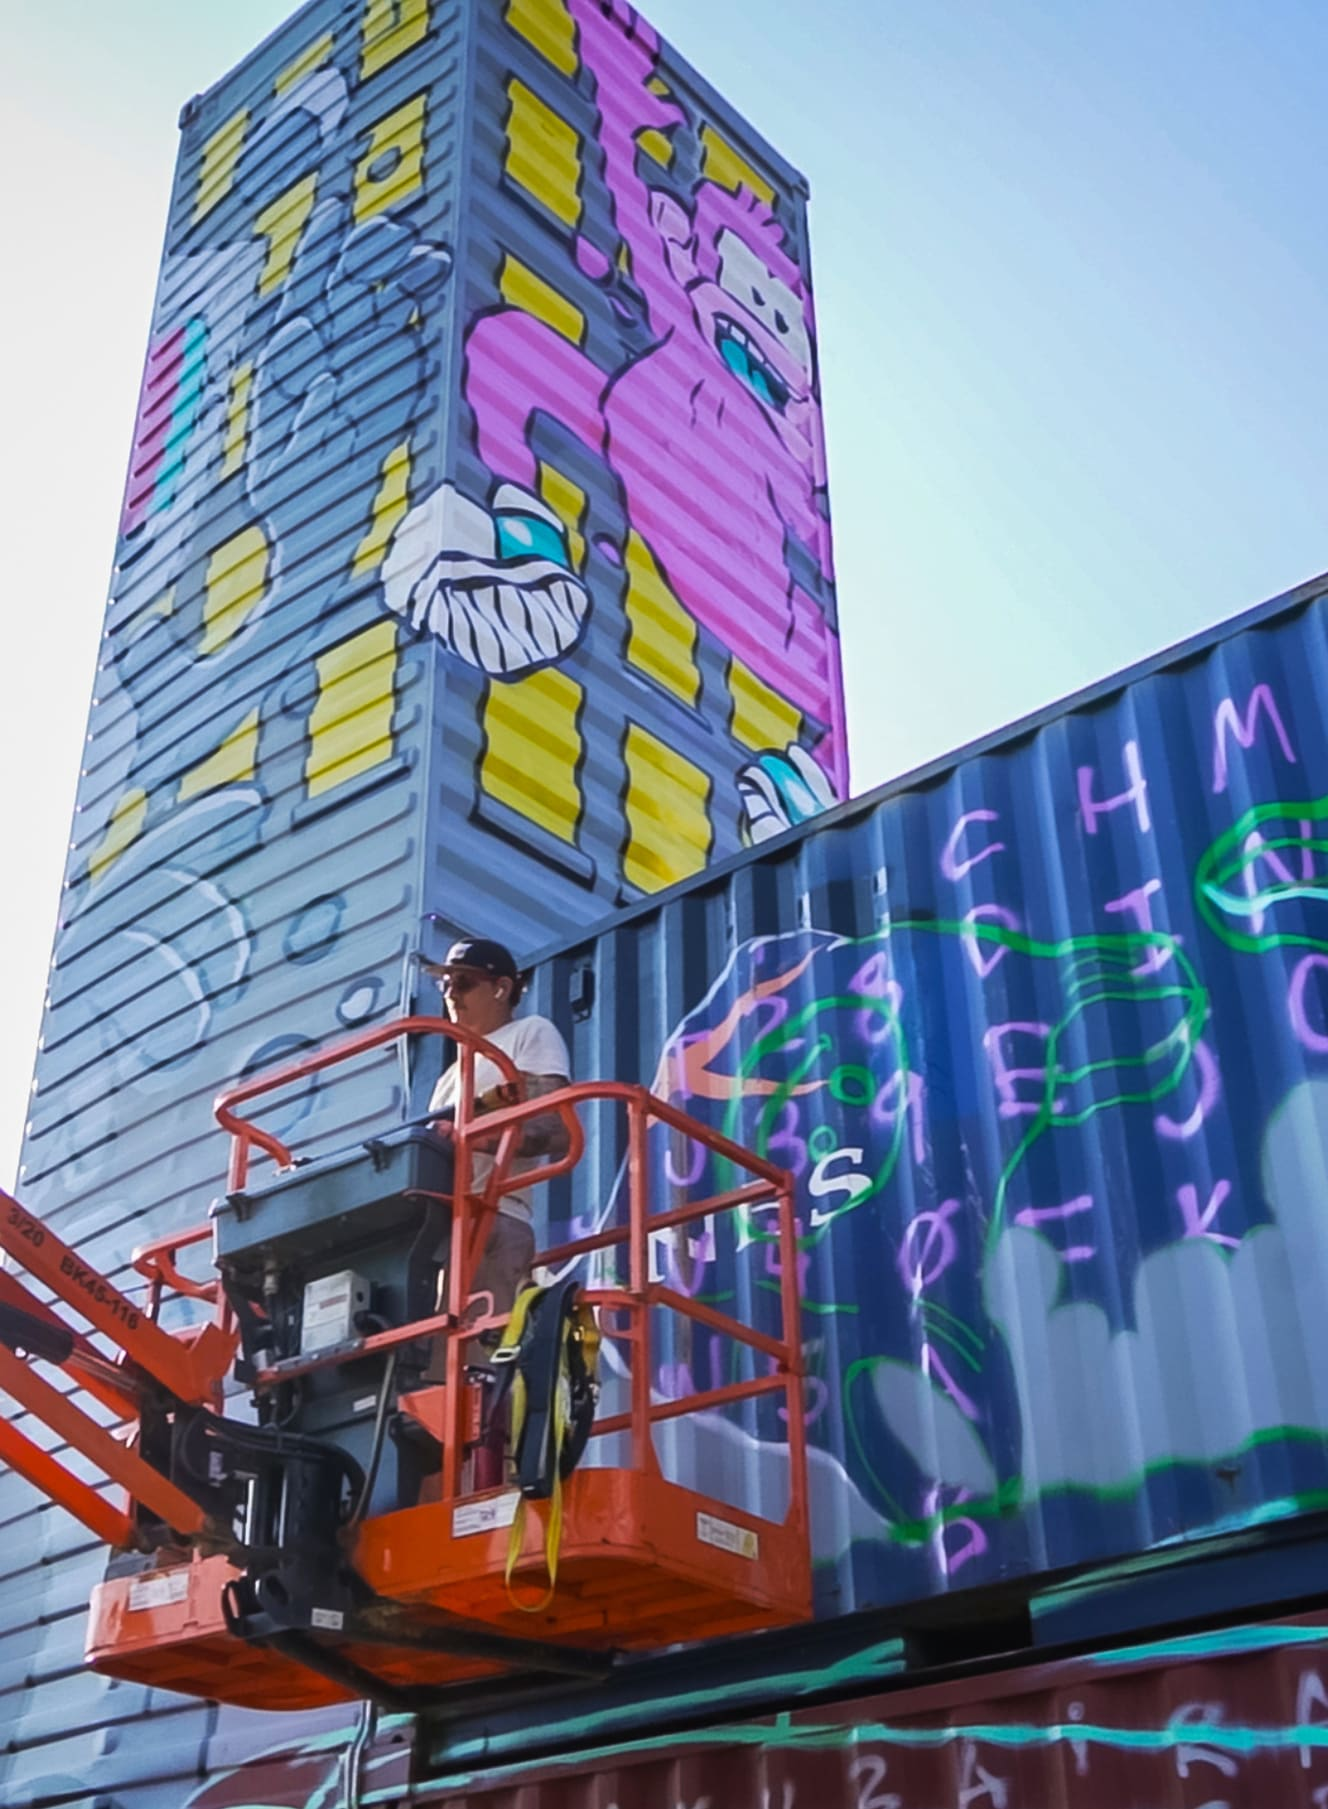 mural artist on a crane platform painting tall shipping containers